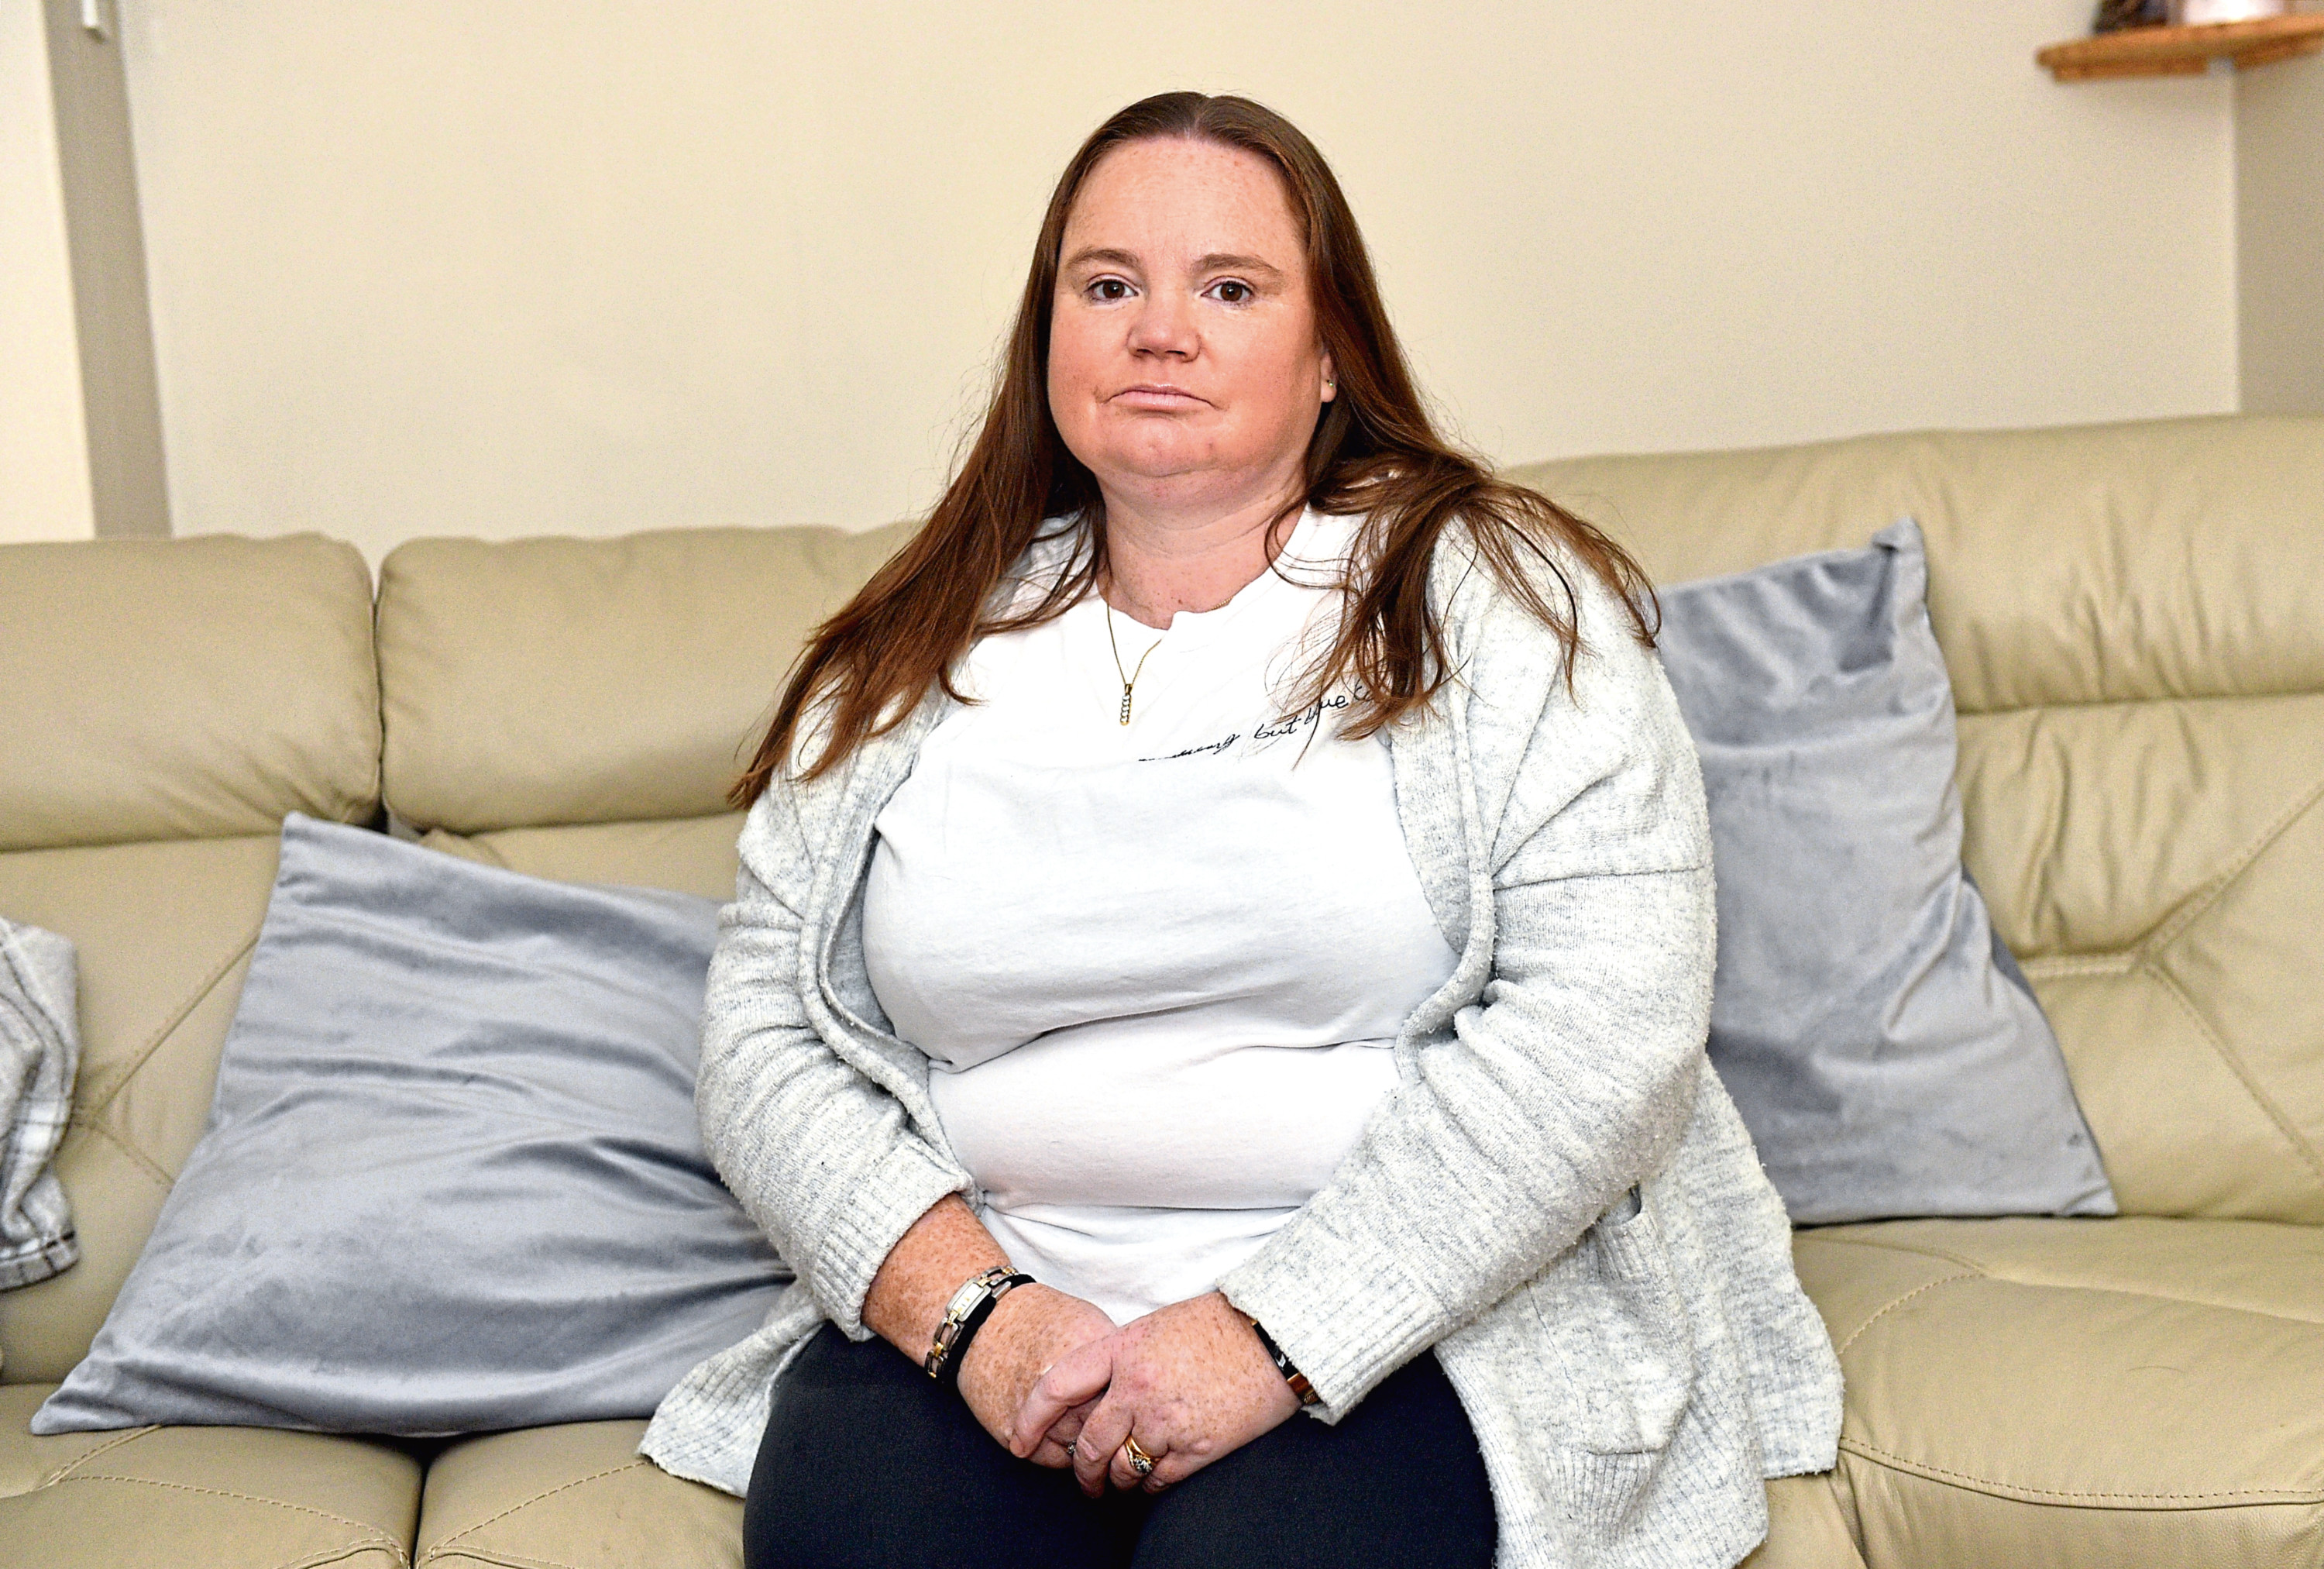 Tracey Crockett fell while at work, had an MRI and was then told she would have to wait at least 41 weeks for an operation to fix the problem